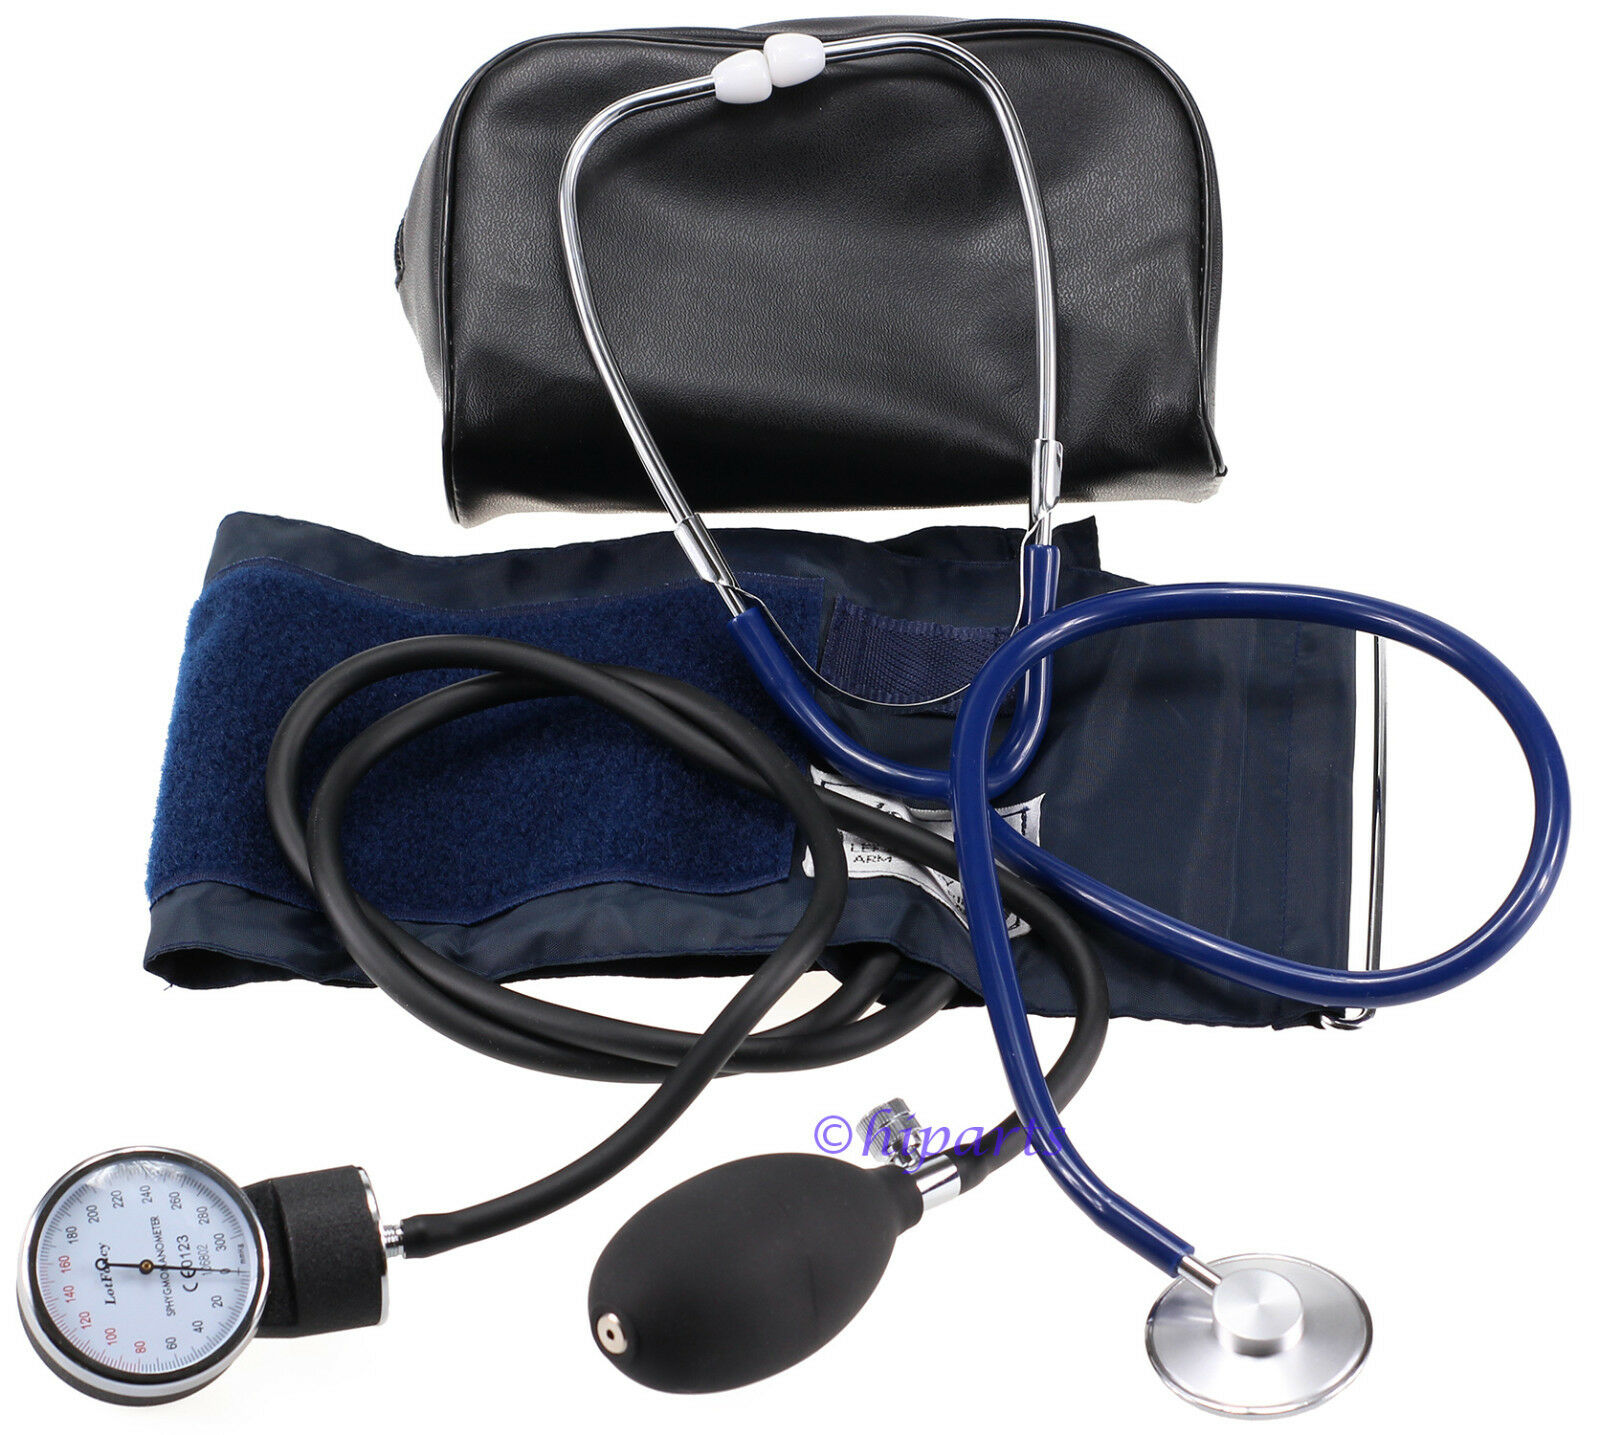 Manual Aneroid Sphygmomanometer Blood Pressure Monitor Cuff